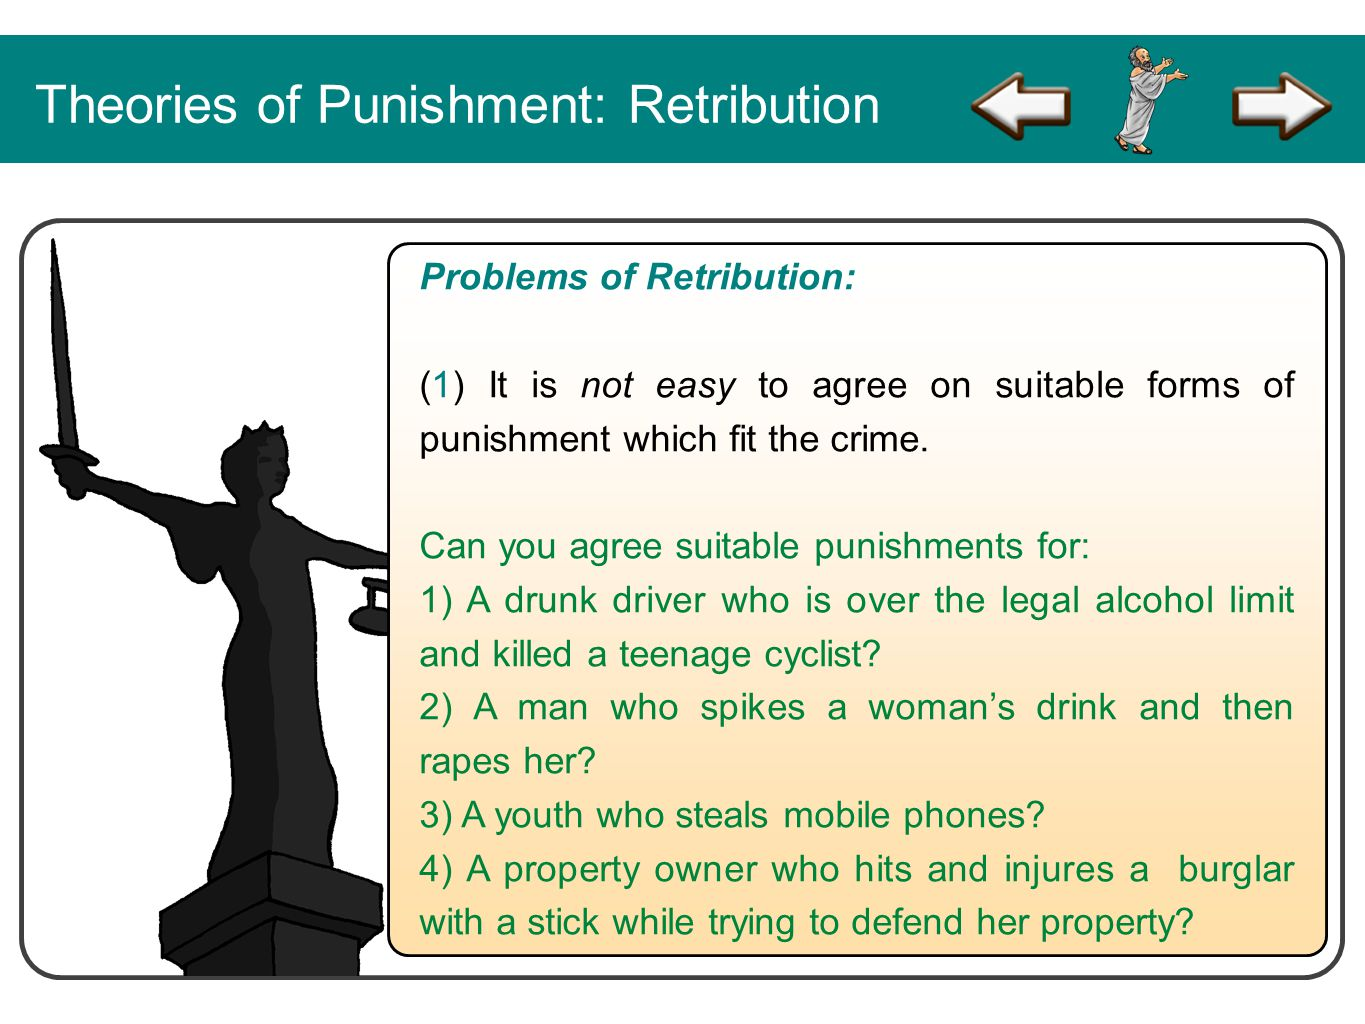 Theories of Punishment: Retribution